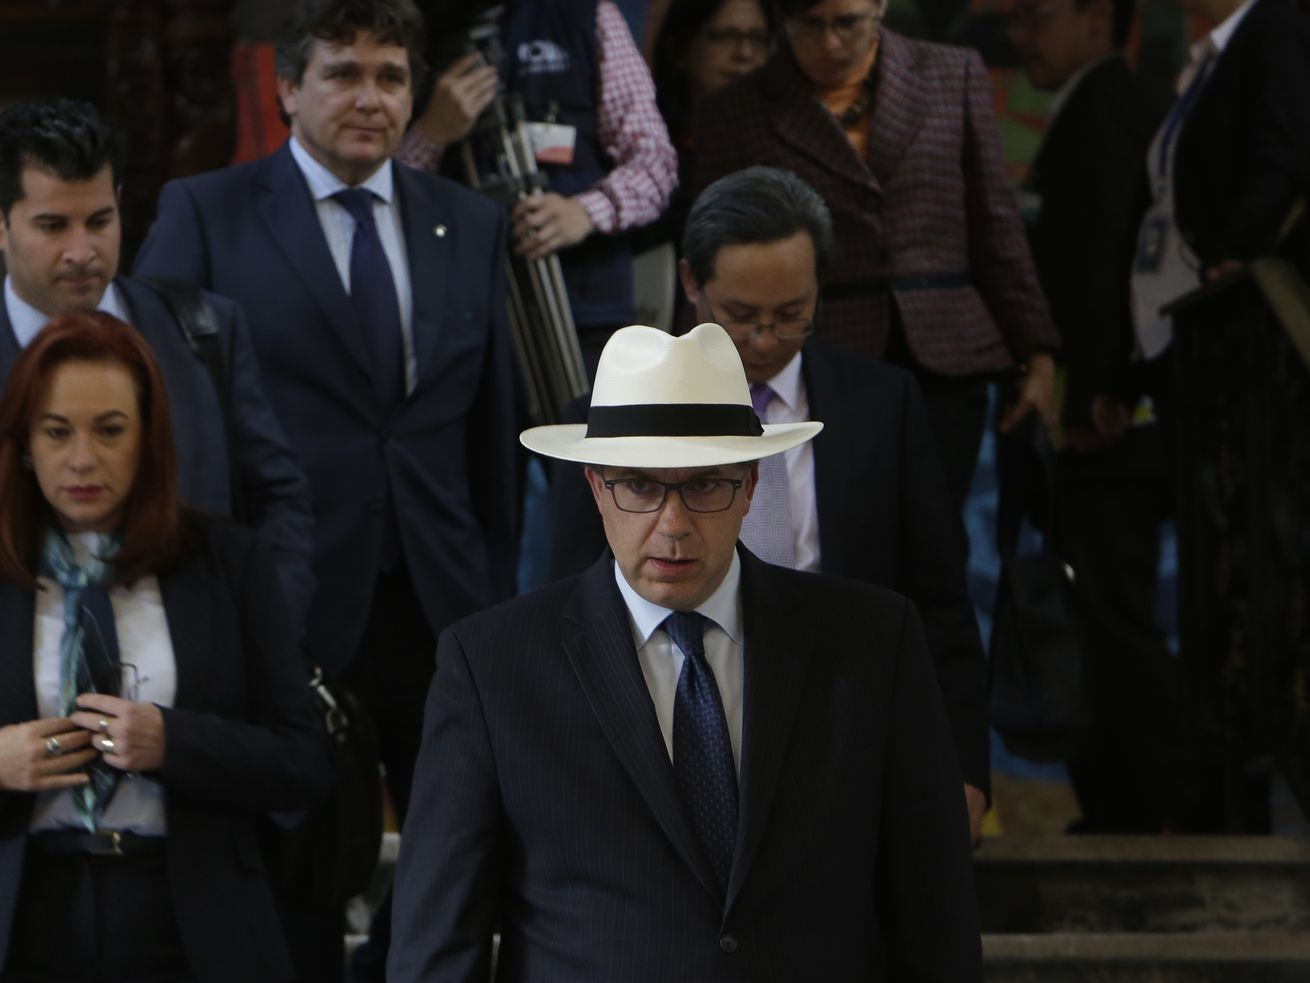 Chapman, in glasses, wearing a dark suit, blue tie, and white Panama hat, descends a flight of stairs, a crowd of diplomats and officials behind him.